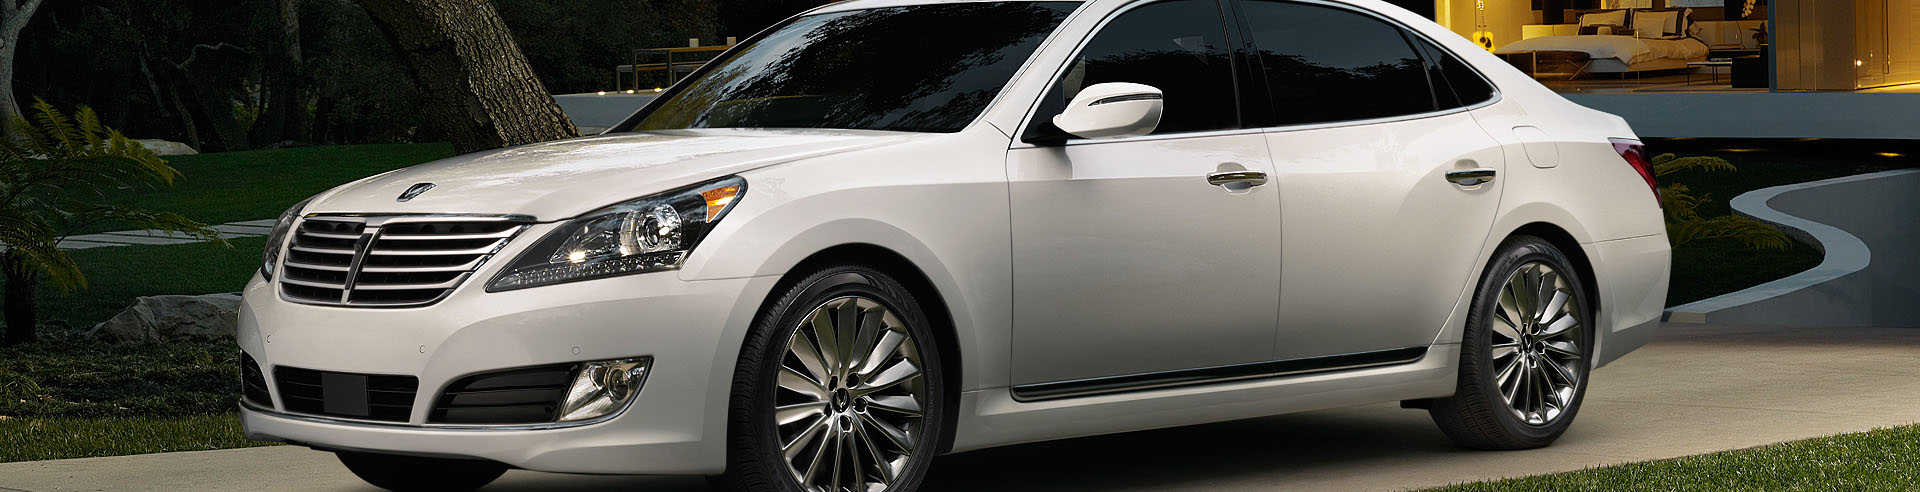 2016 Hyundai Equus - Ownership Experience